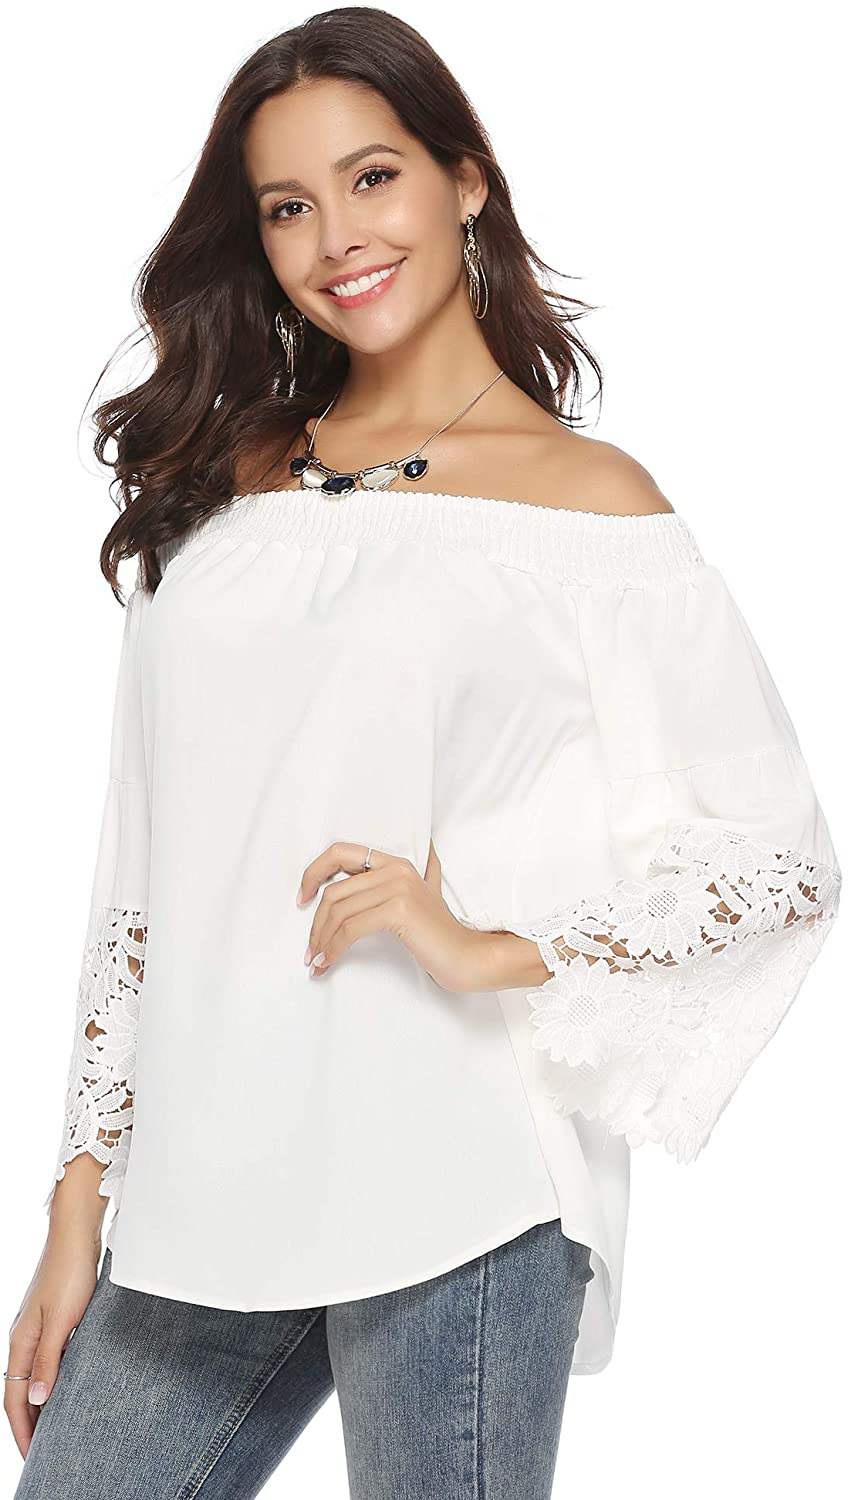 Abollria Women's Summer Off Shoulder Long Sleeve Lace Floral Casual Tops Blouse